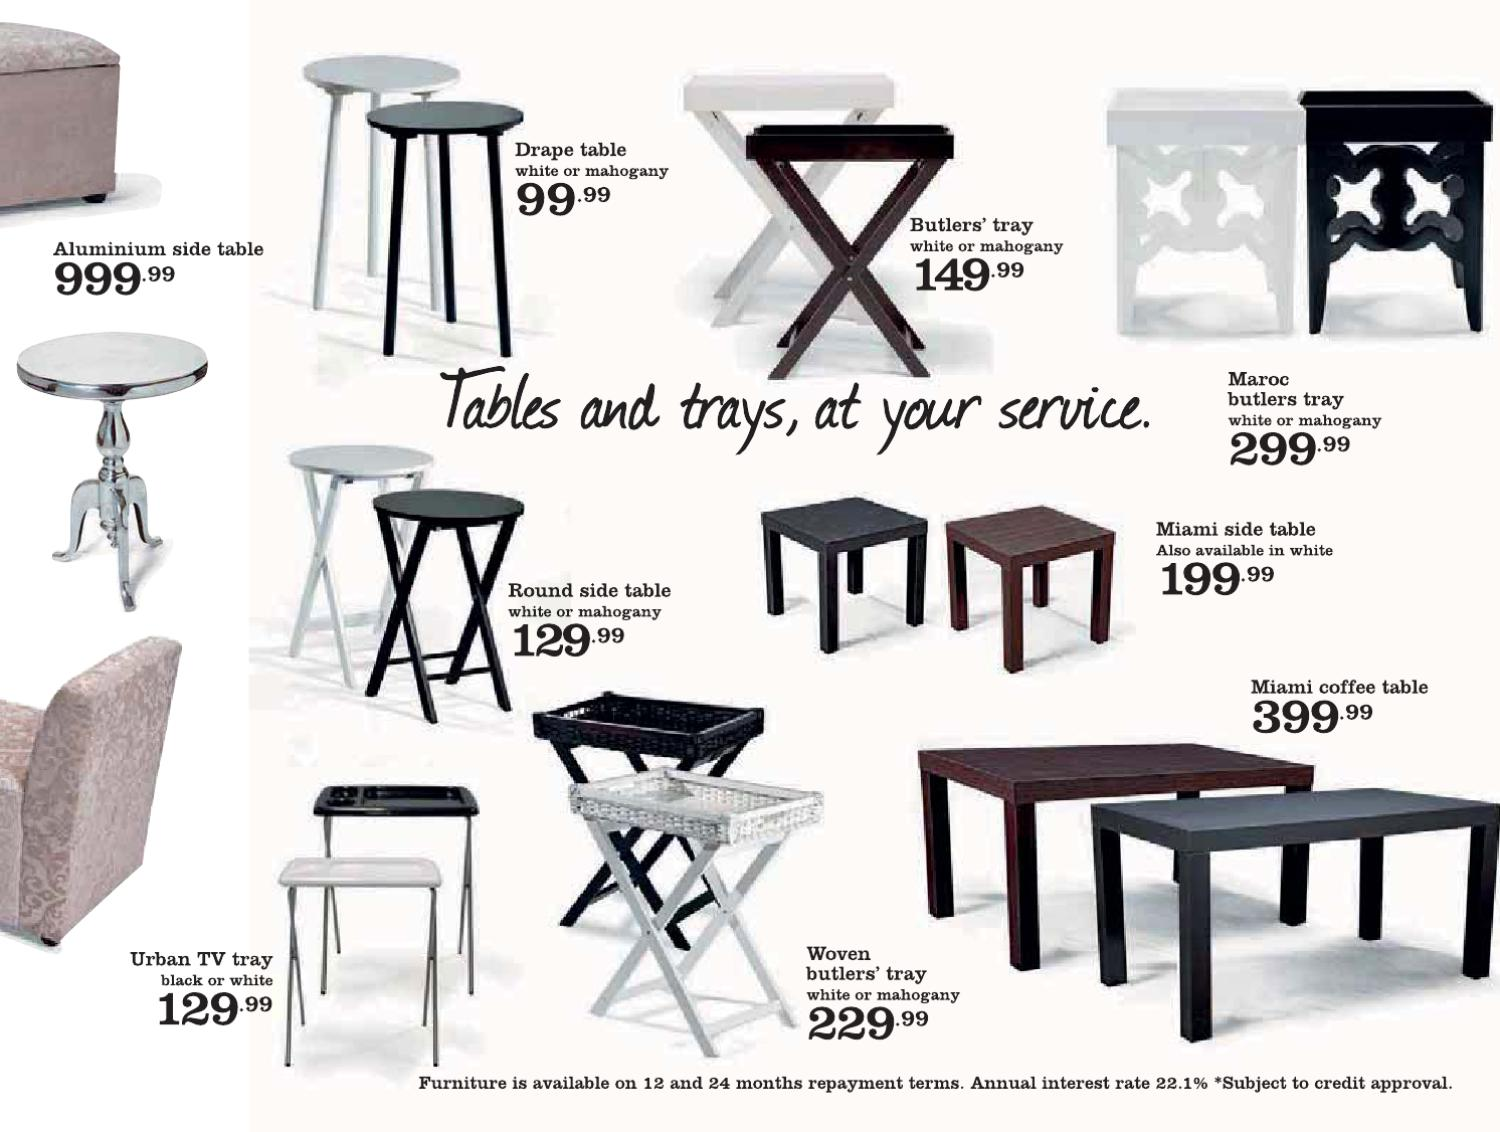 Mr Price Home Furniture Catalogue 2011 By Mrpg Page 9 Issuu